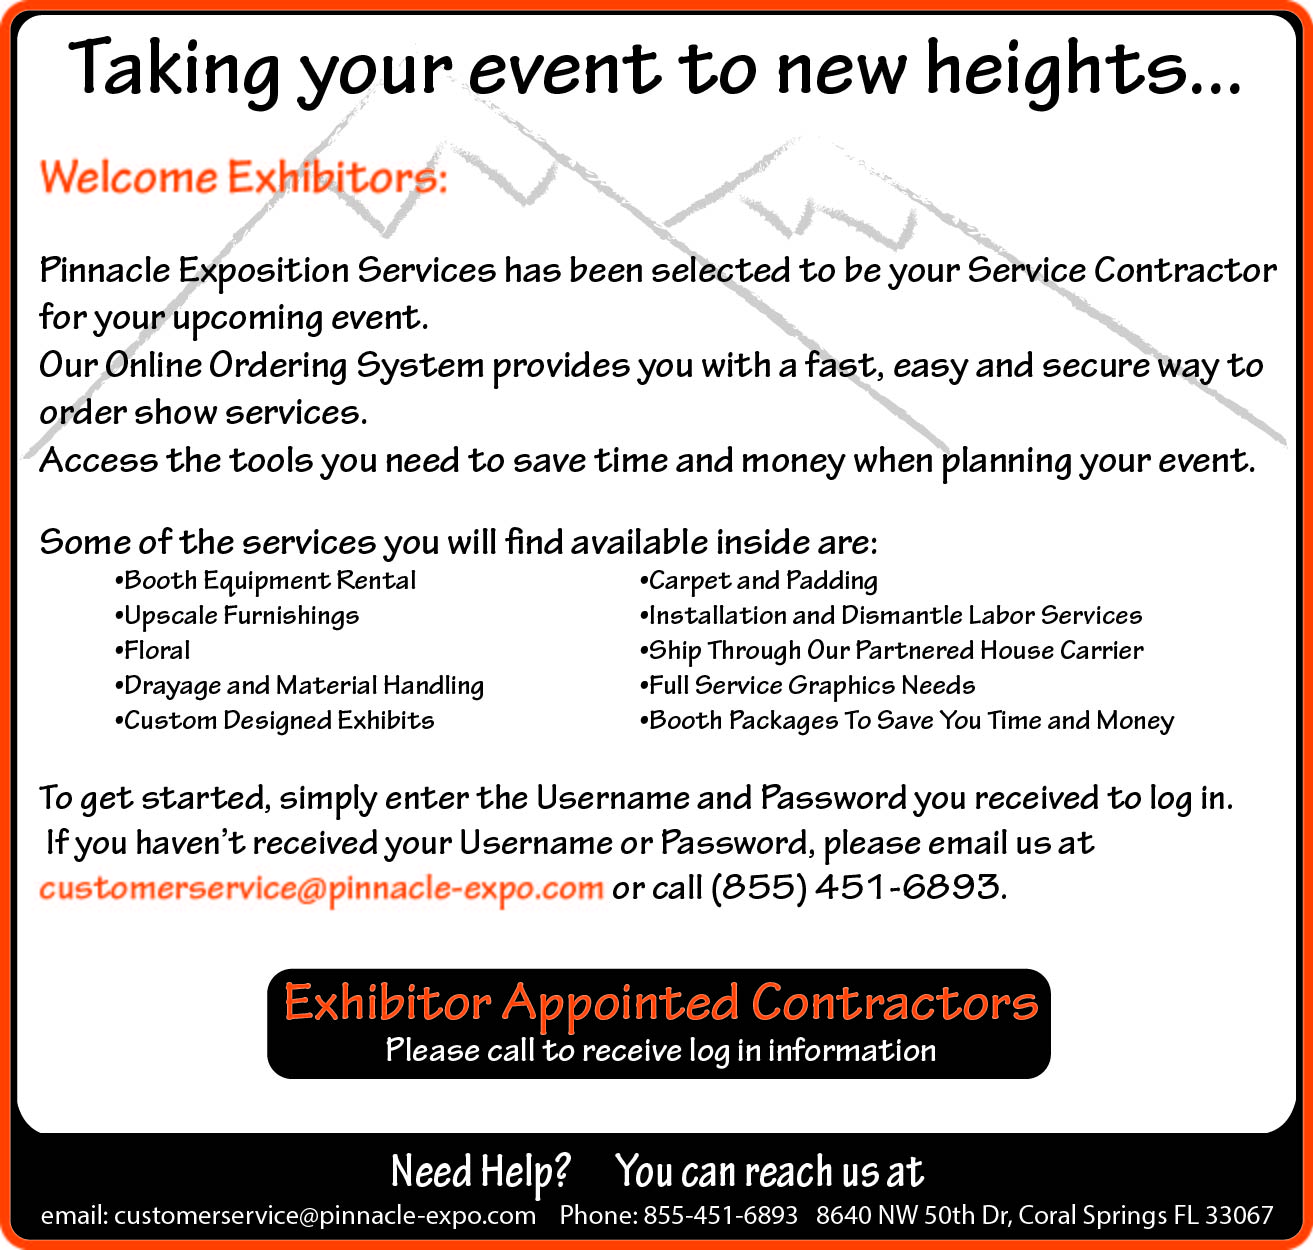 Pinnacle Exposition Services